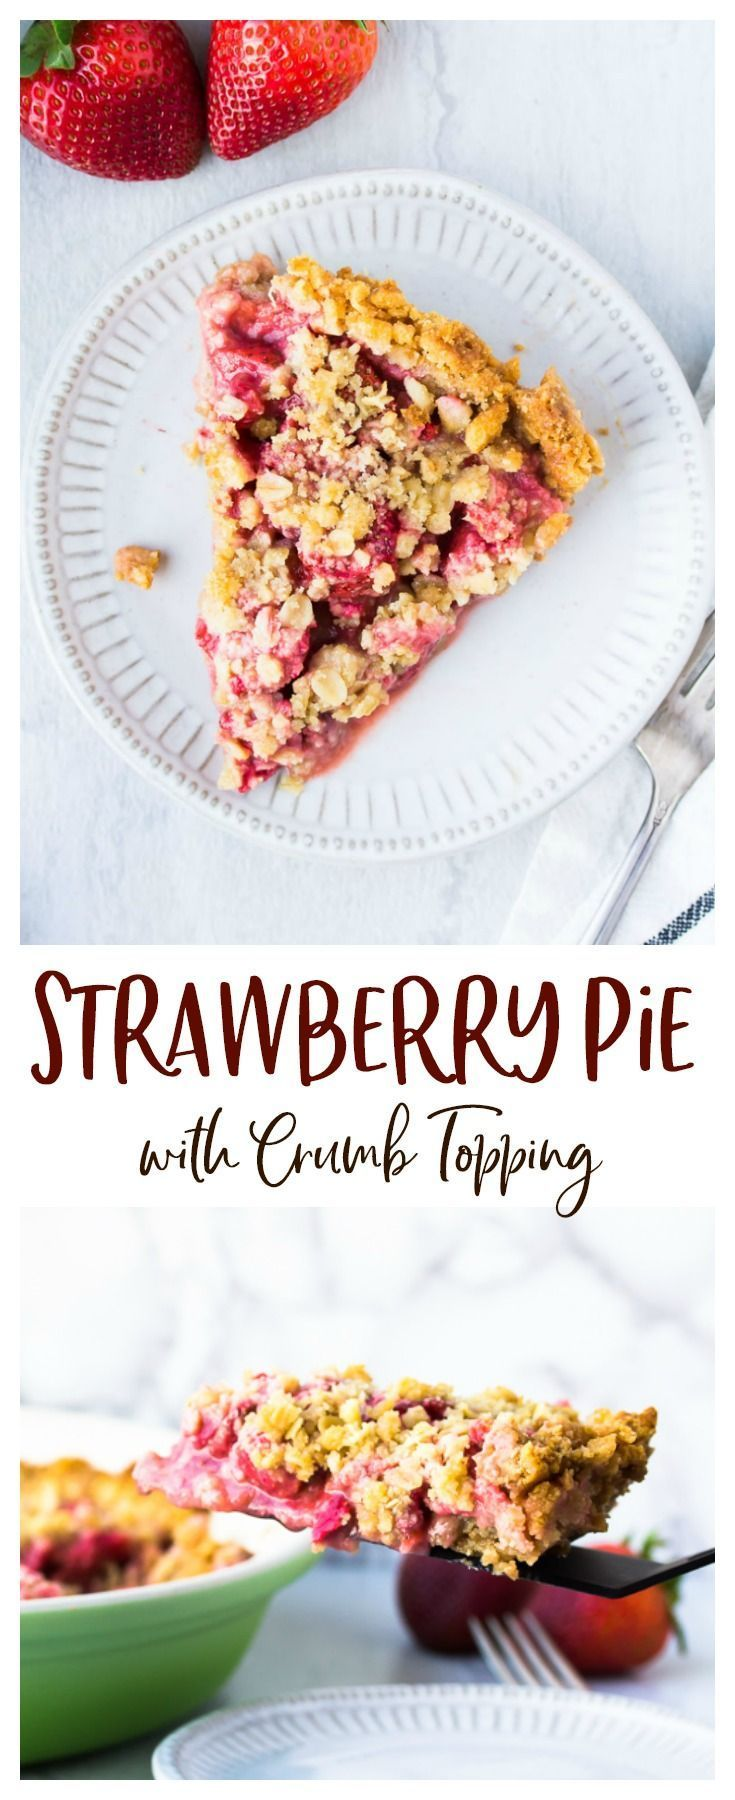 Strawberry Pie - an easy dessert recipe made with fresh, juicy strawberries and served on a NILLA Wafer crust. It's topped with a buttery crumble. The perfect way to use summer's fresh strawberries in a delicious treat everyone will love! Pie - an easy dessert recipe made with fresh, juicy strawberries and served on a NILLA Wafer crust. It's topped with a buttery crumble. The perfect way to use summer's fresh strawberries in a delicious treat everyone will love! |